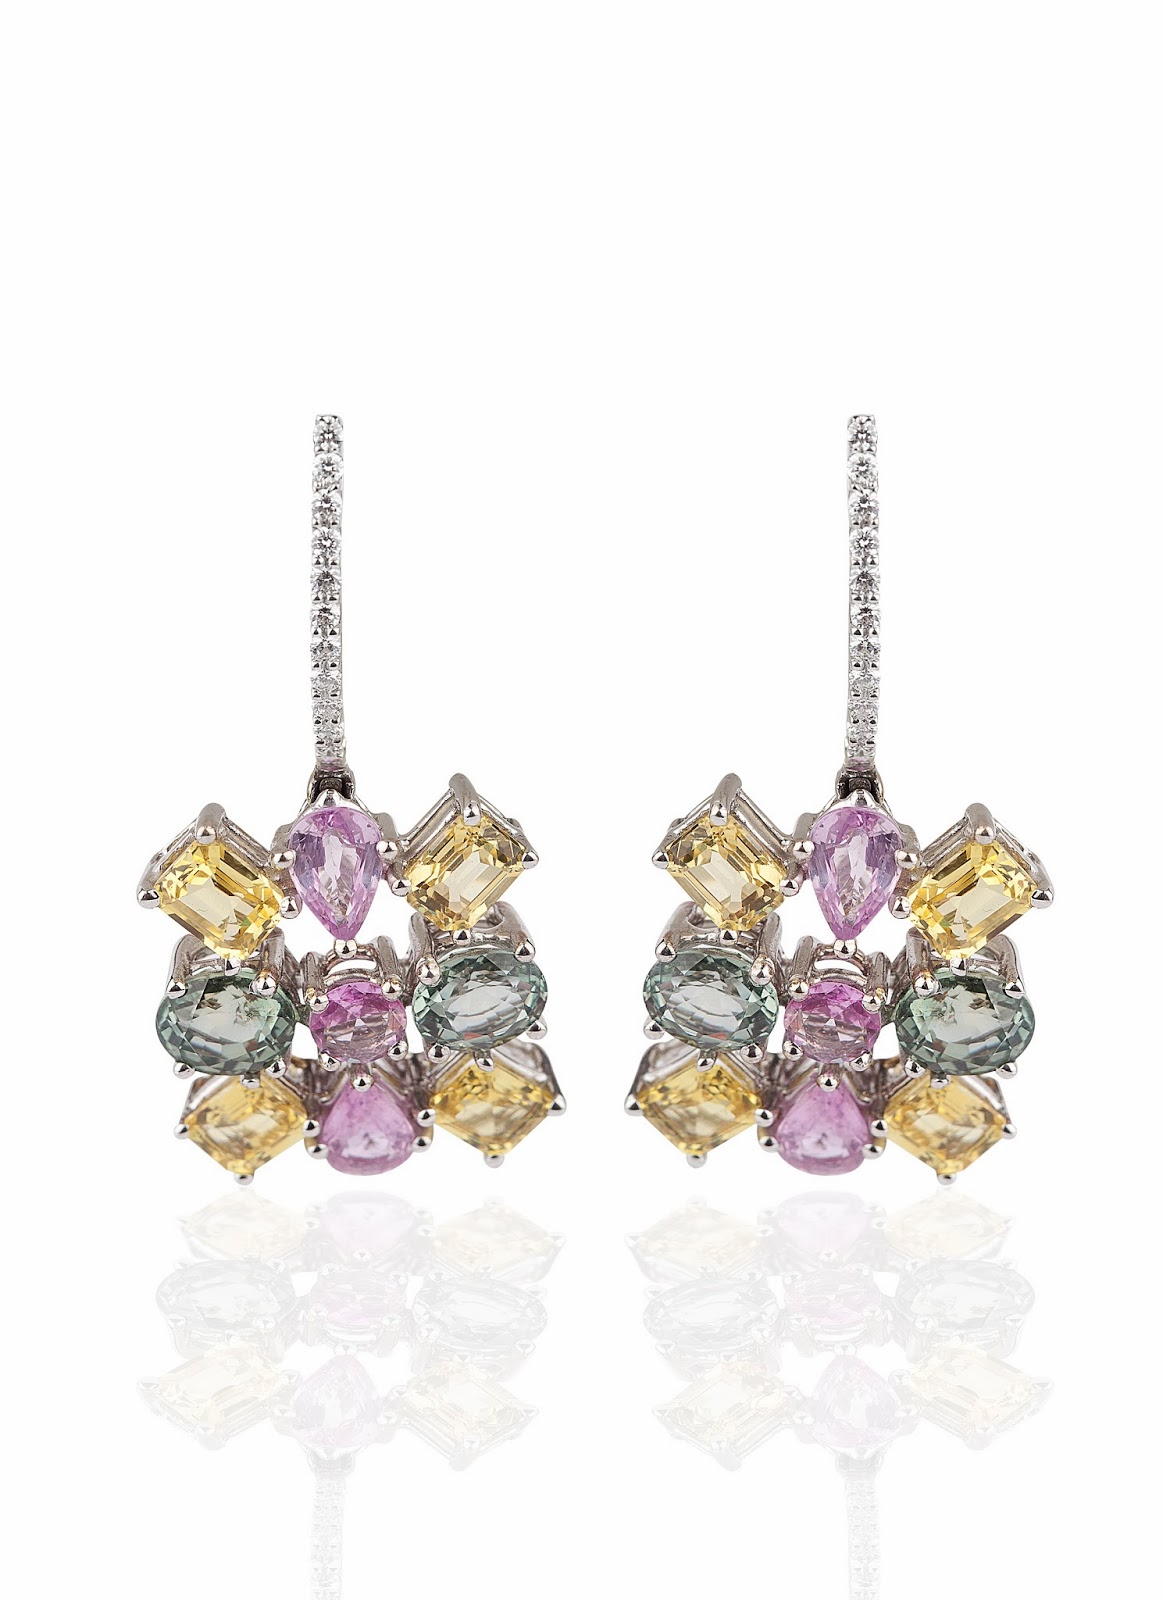 Get Your Jewelry Spring-Ready With Mirari Sorbet Collection